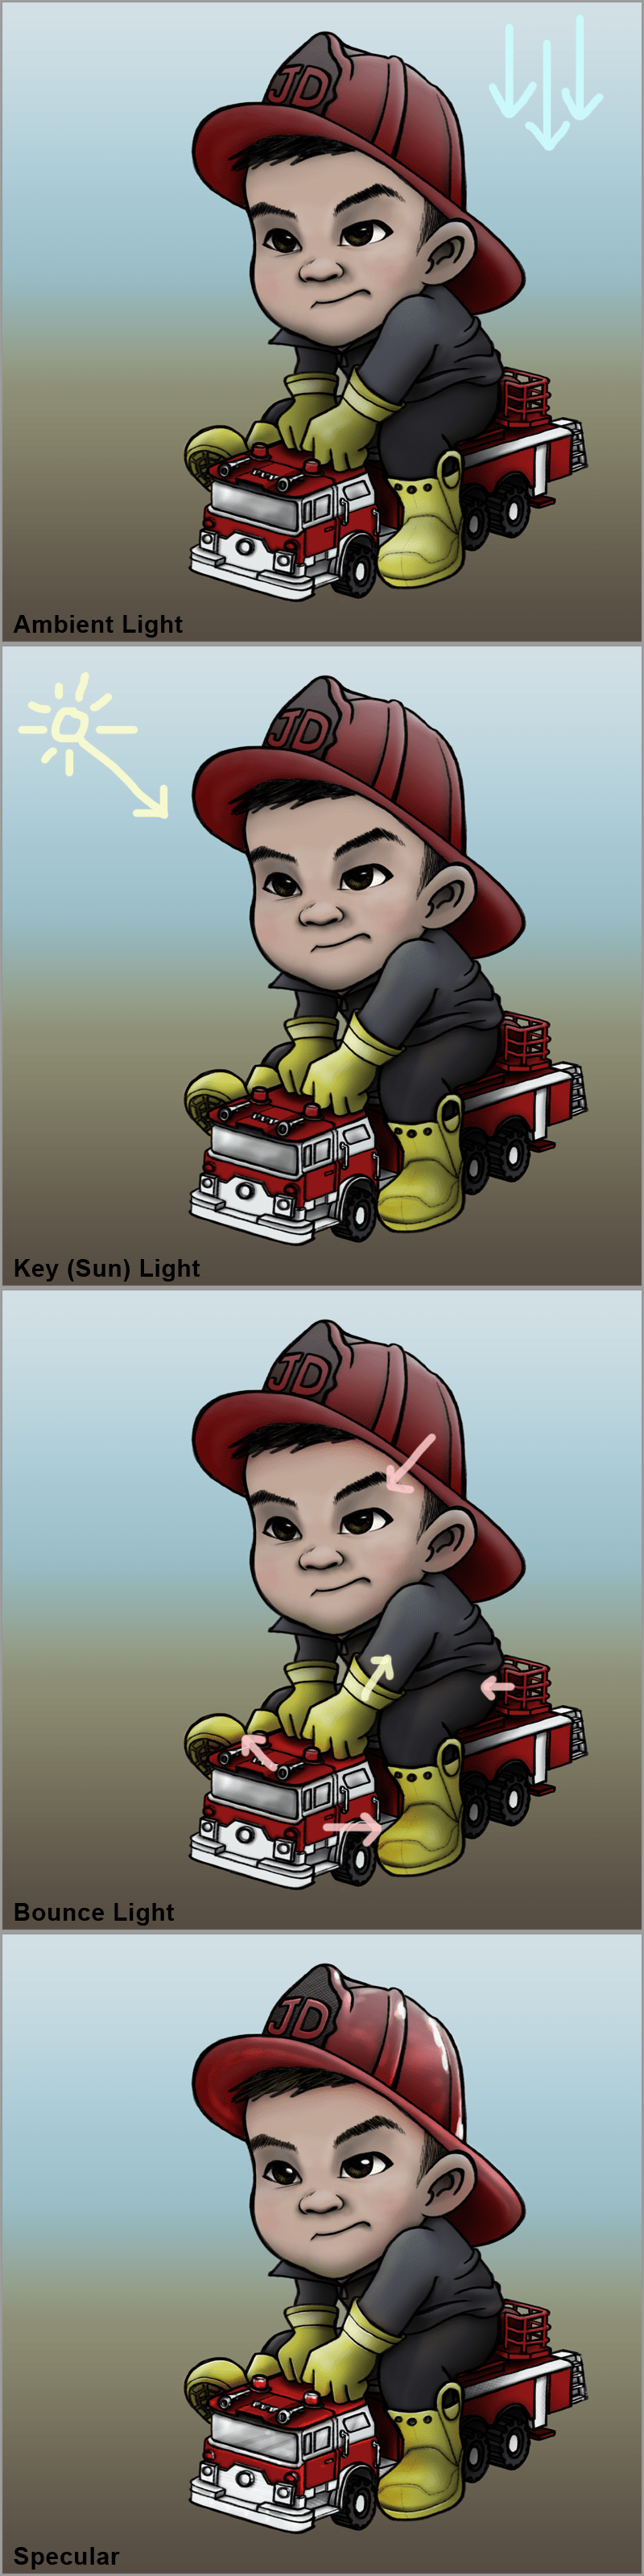 firemanjd_lighting